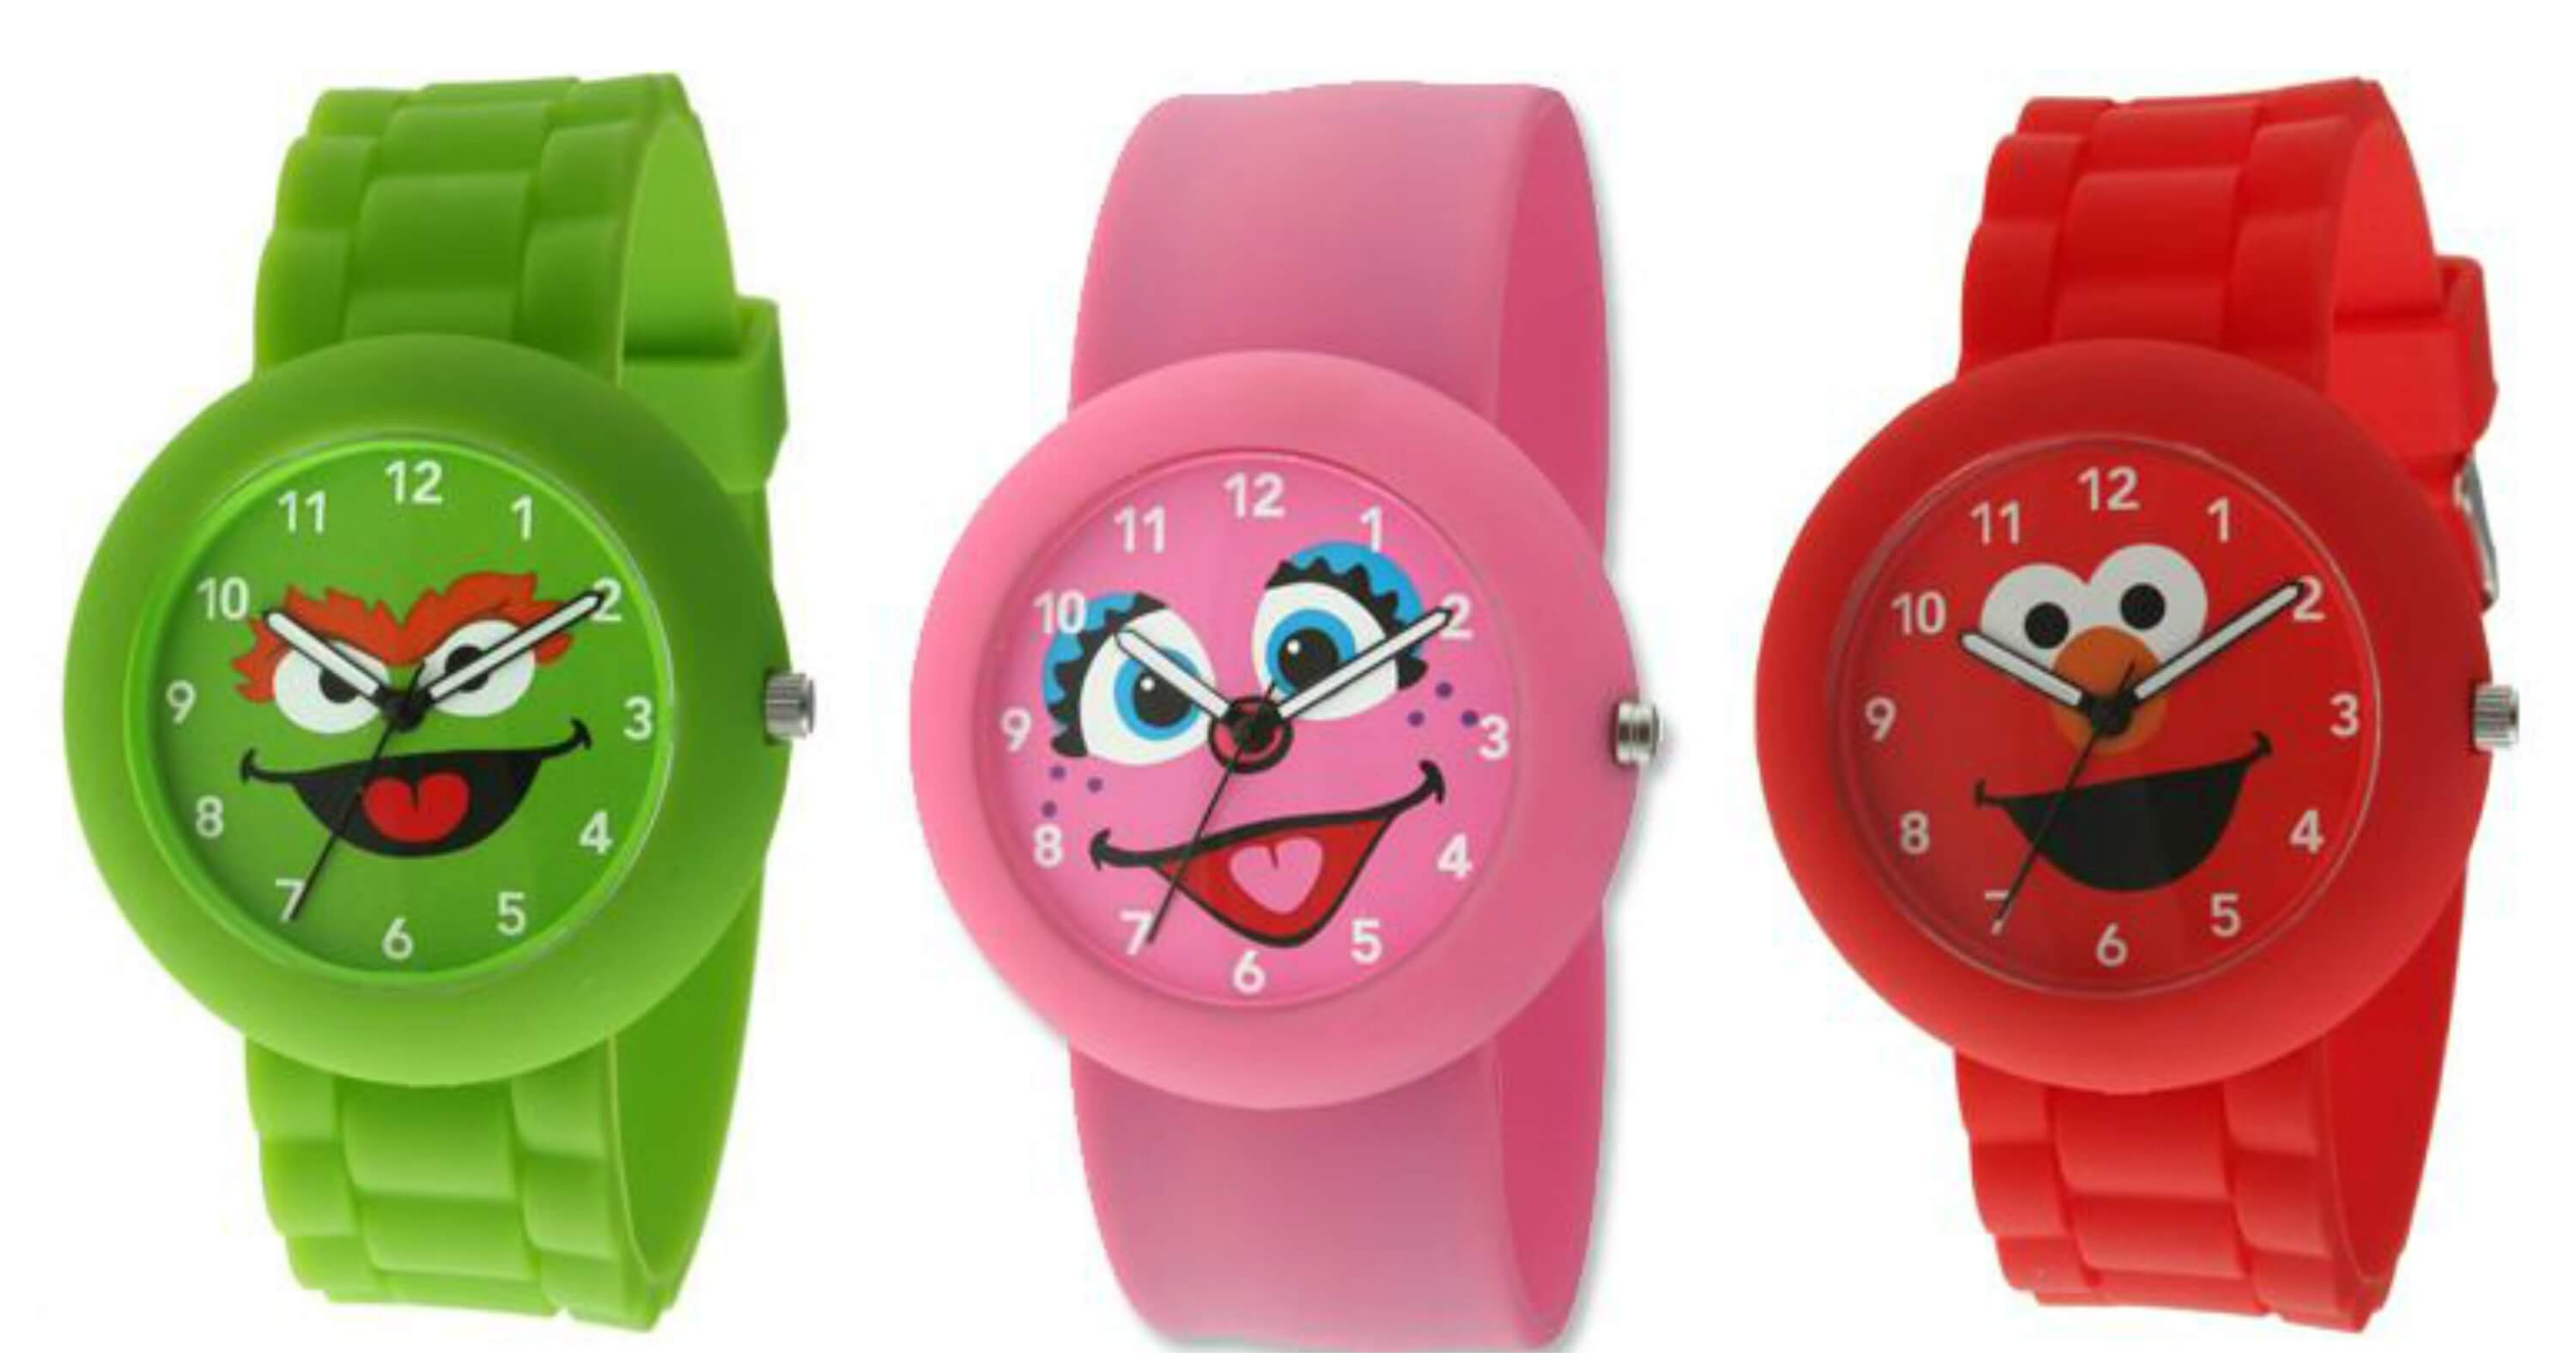 animal s on young recommend mummy idea fun them kids time are the watches think so a put really design children easy i definitely anisnap help telling these to for little review they introduce